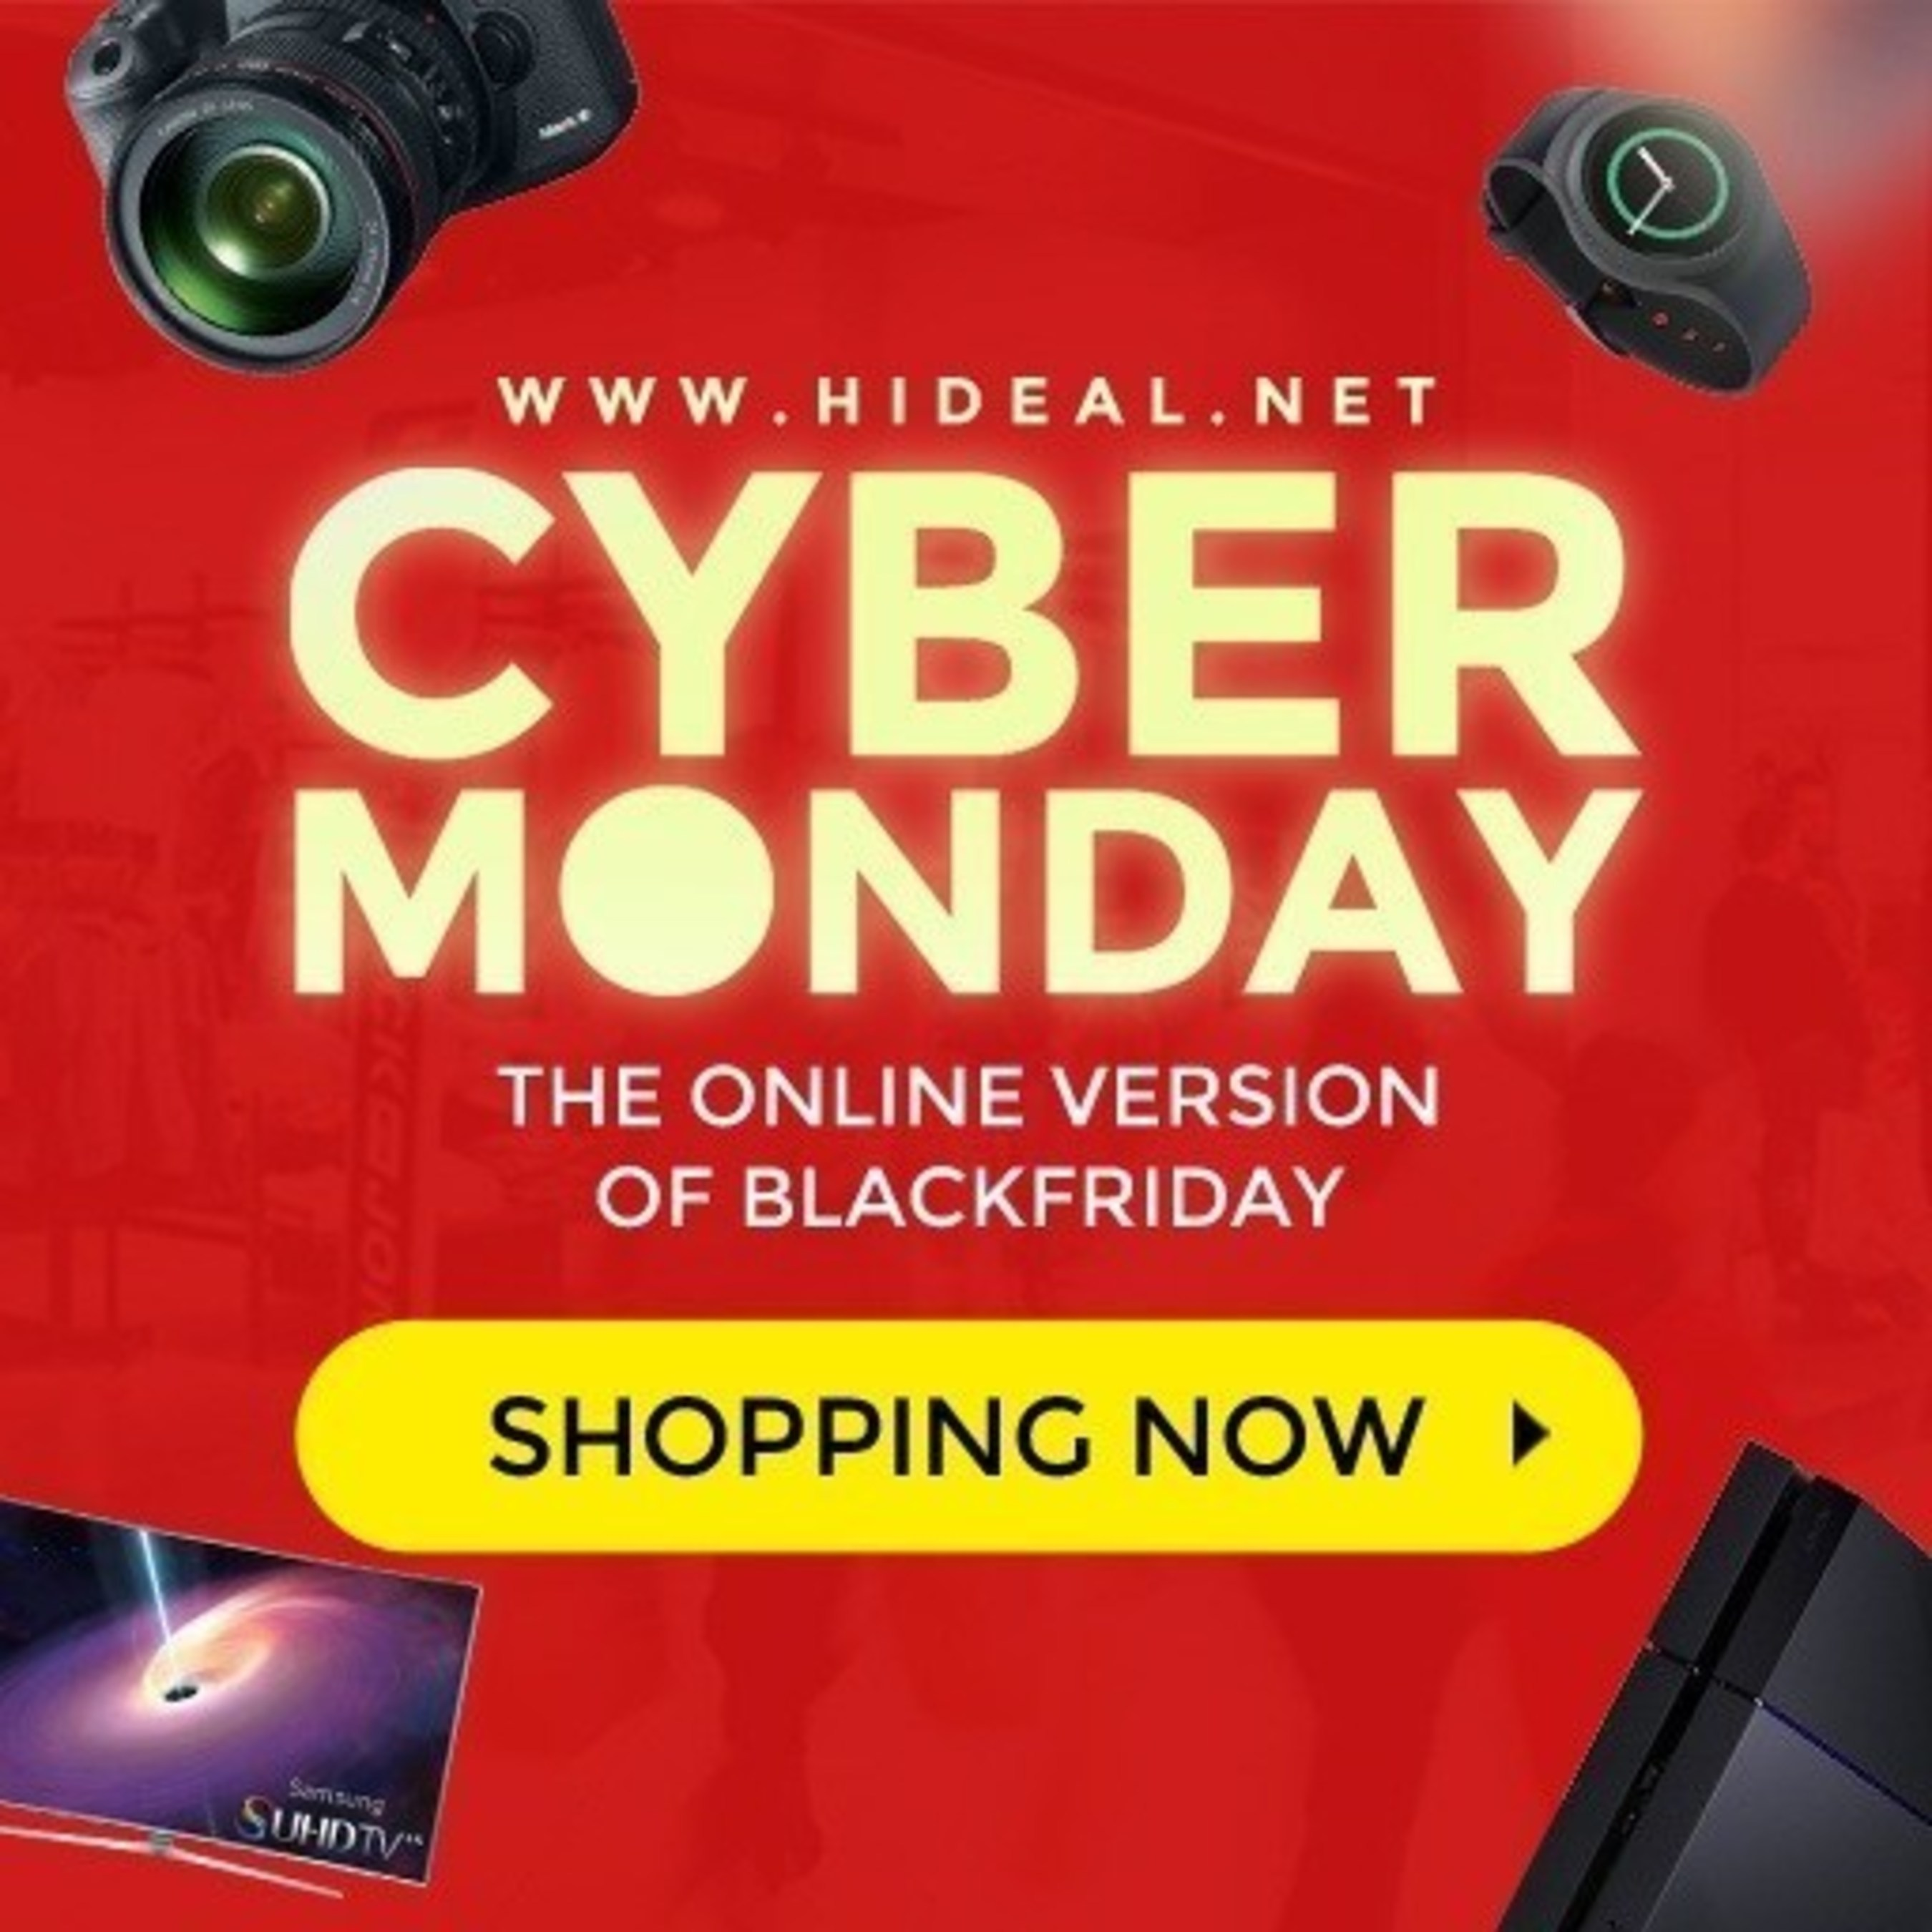 Hideal.net Presents the Best 2015 Cyber Monday Deals